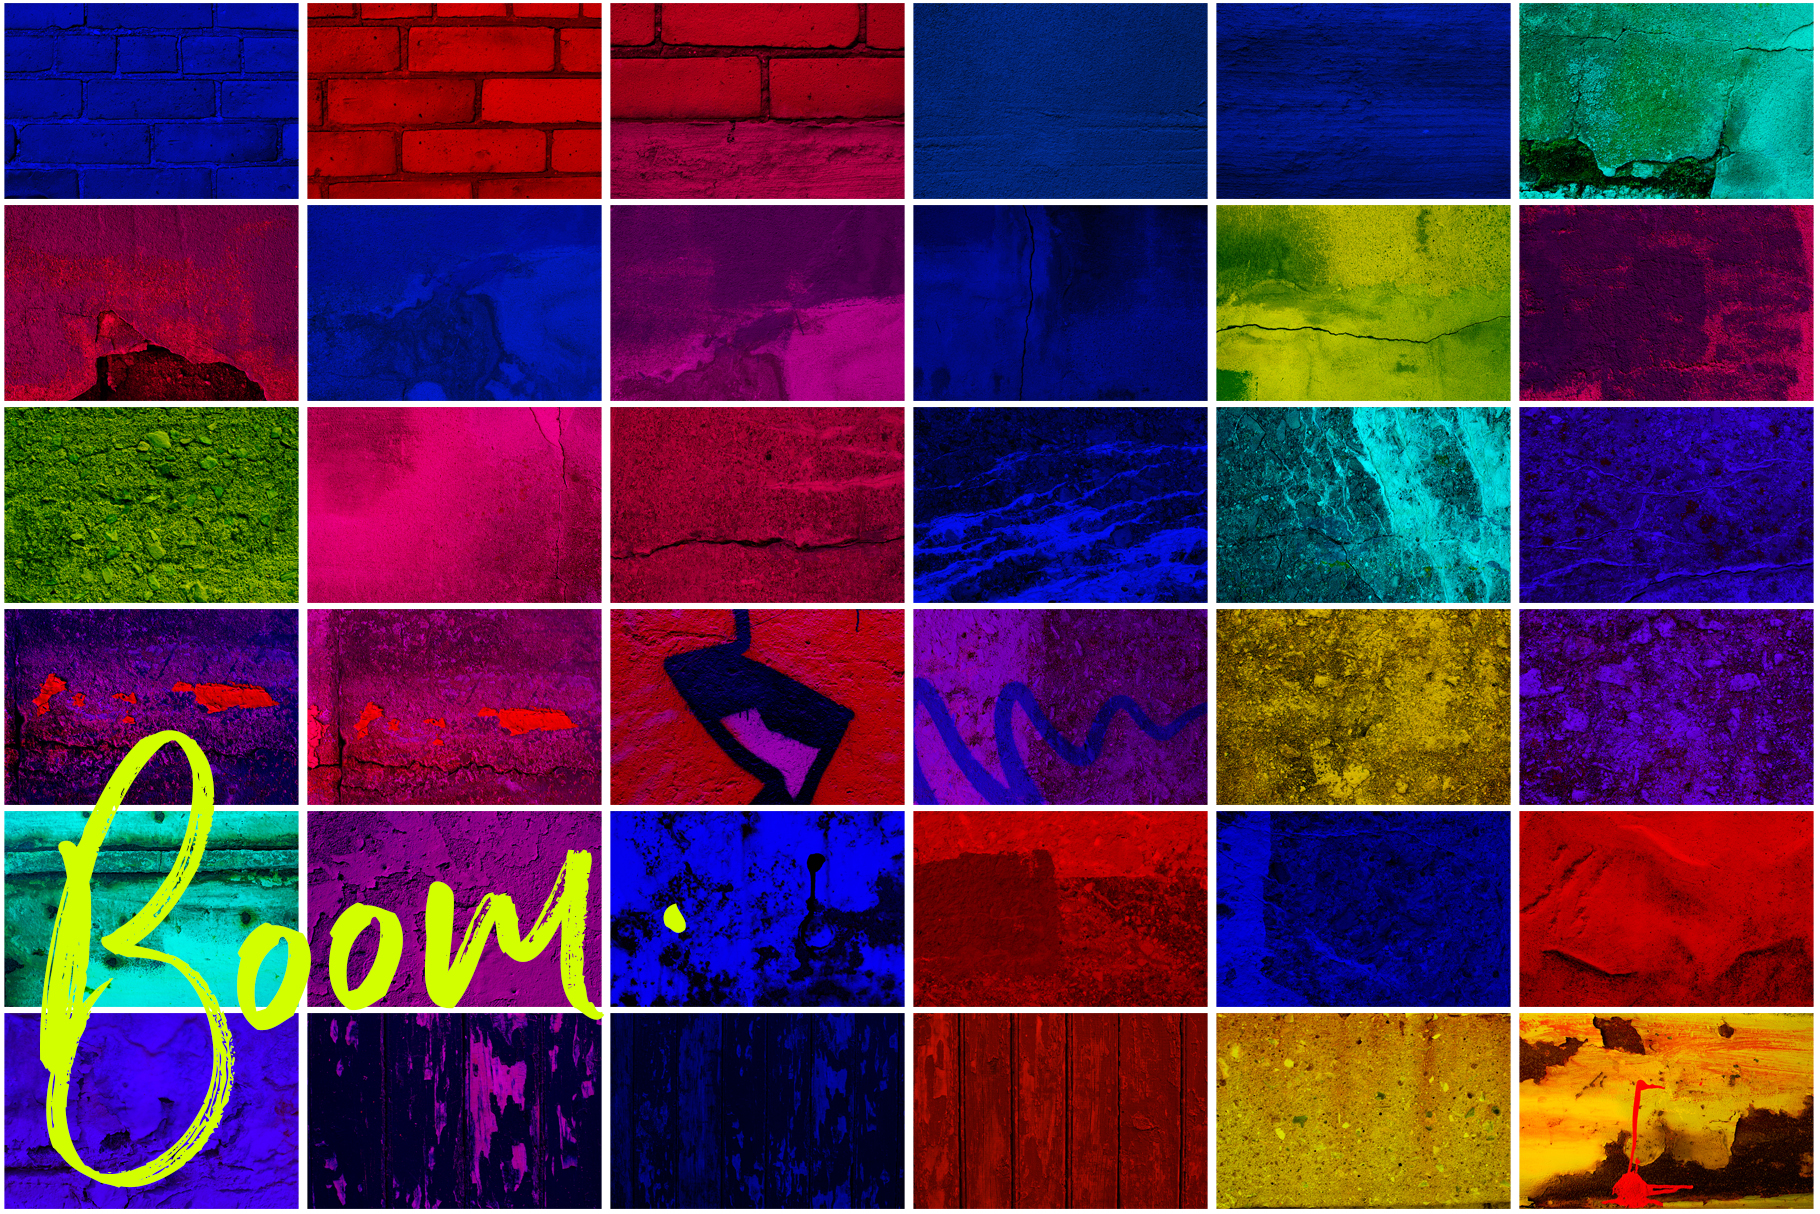 Boom background preview thumbnails 2/2.